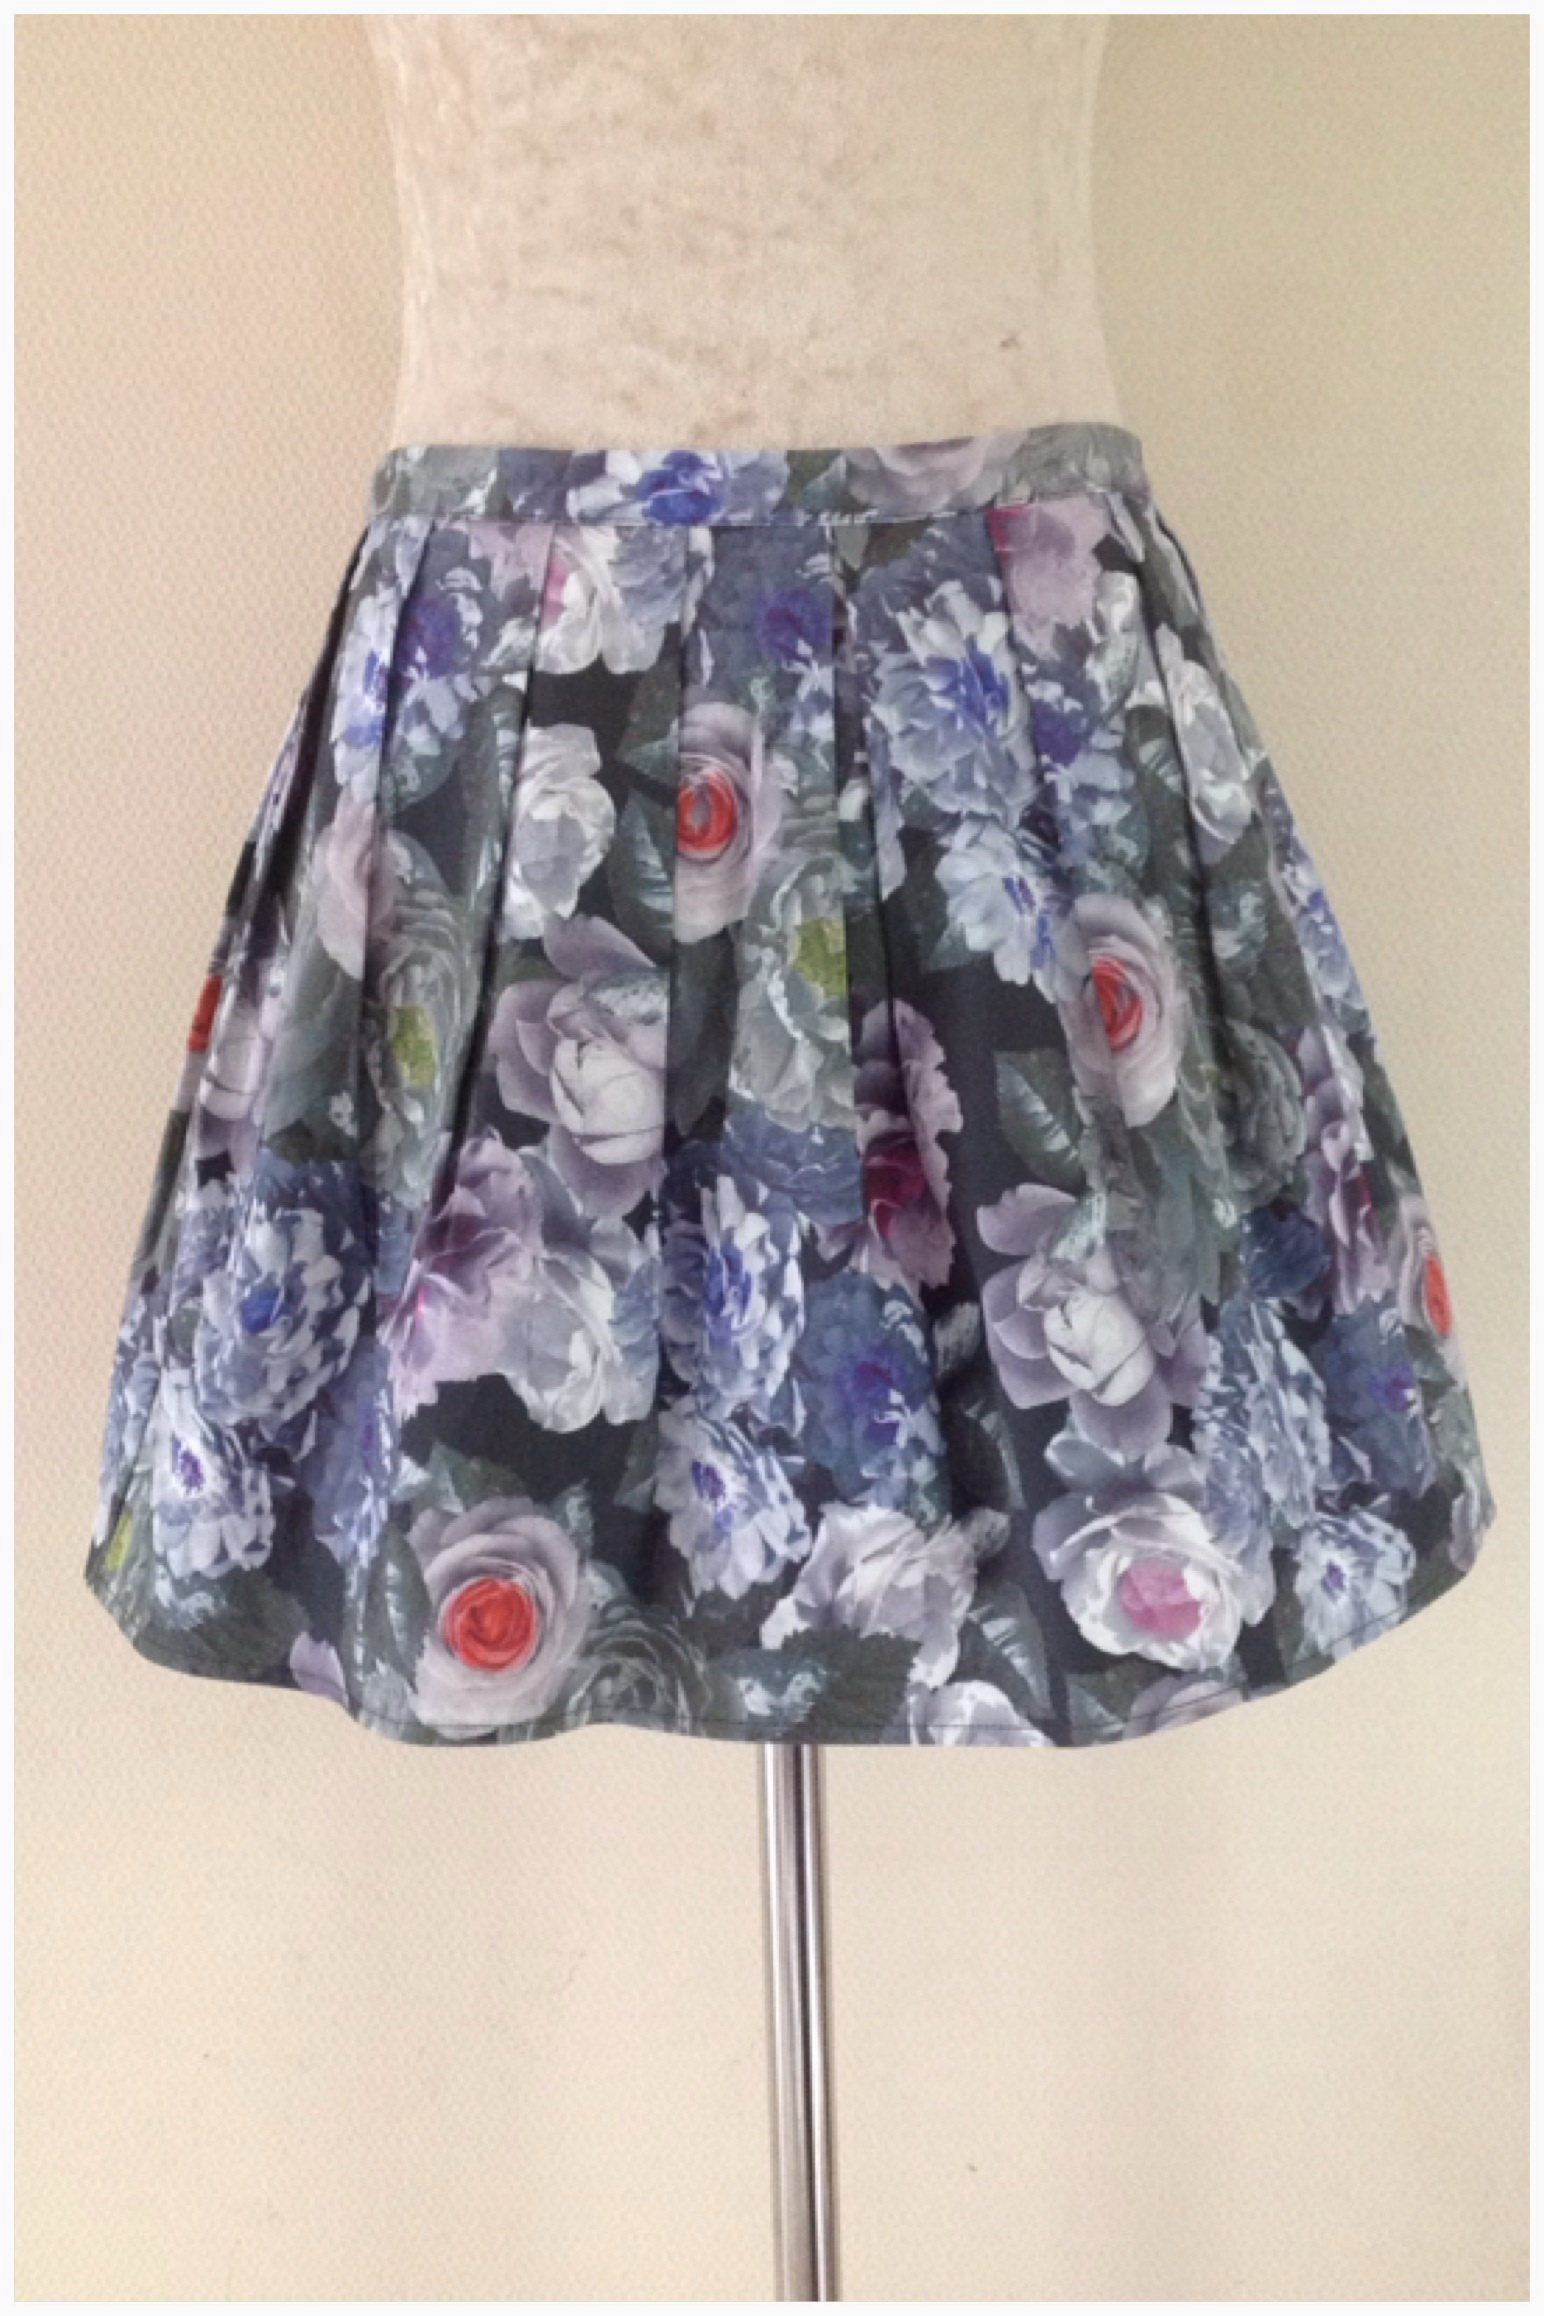 Topshop Floral Skirt Size UK 12